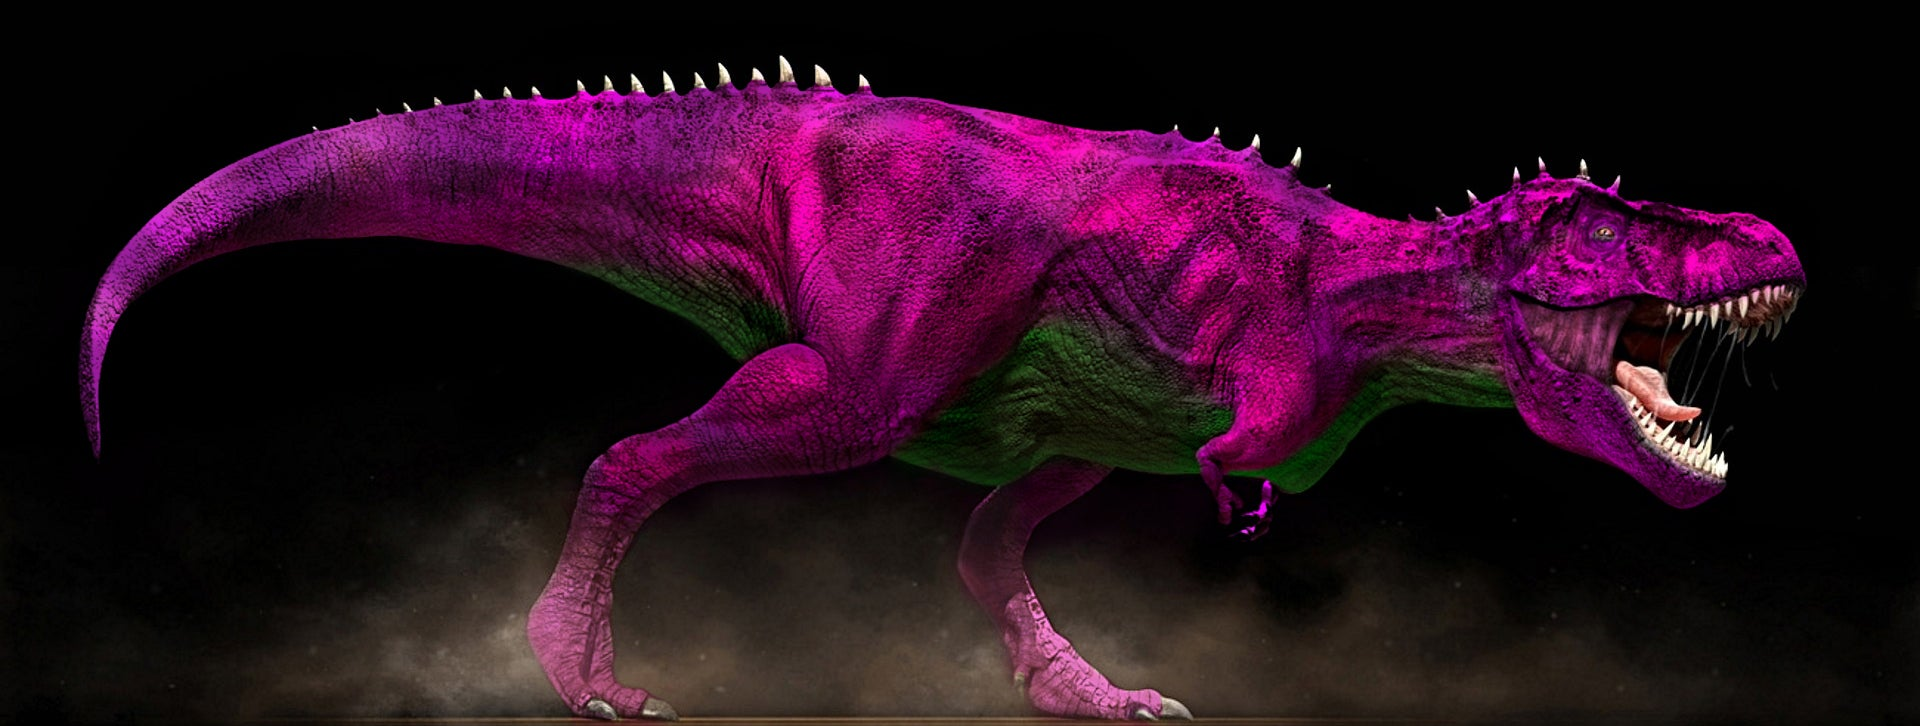 Scientifically Accurate Barney Destroys Childhoods And Does Not Love You